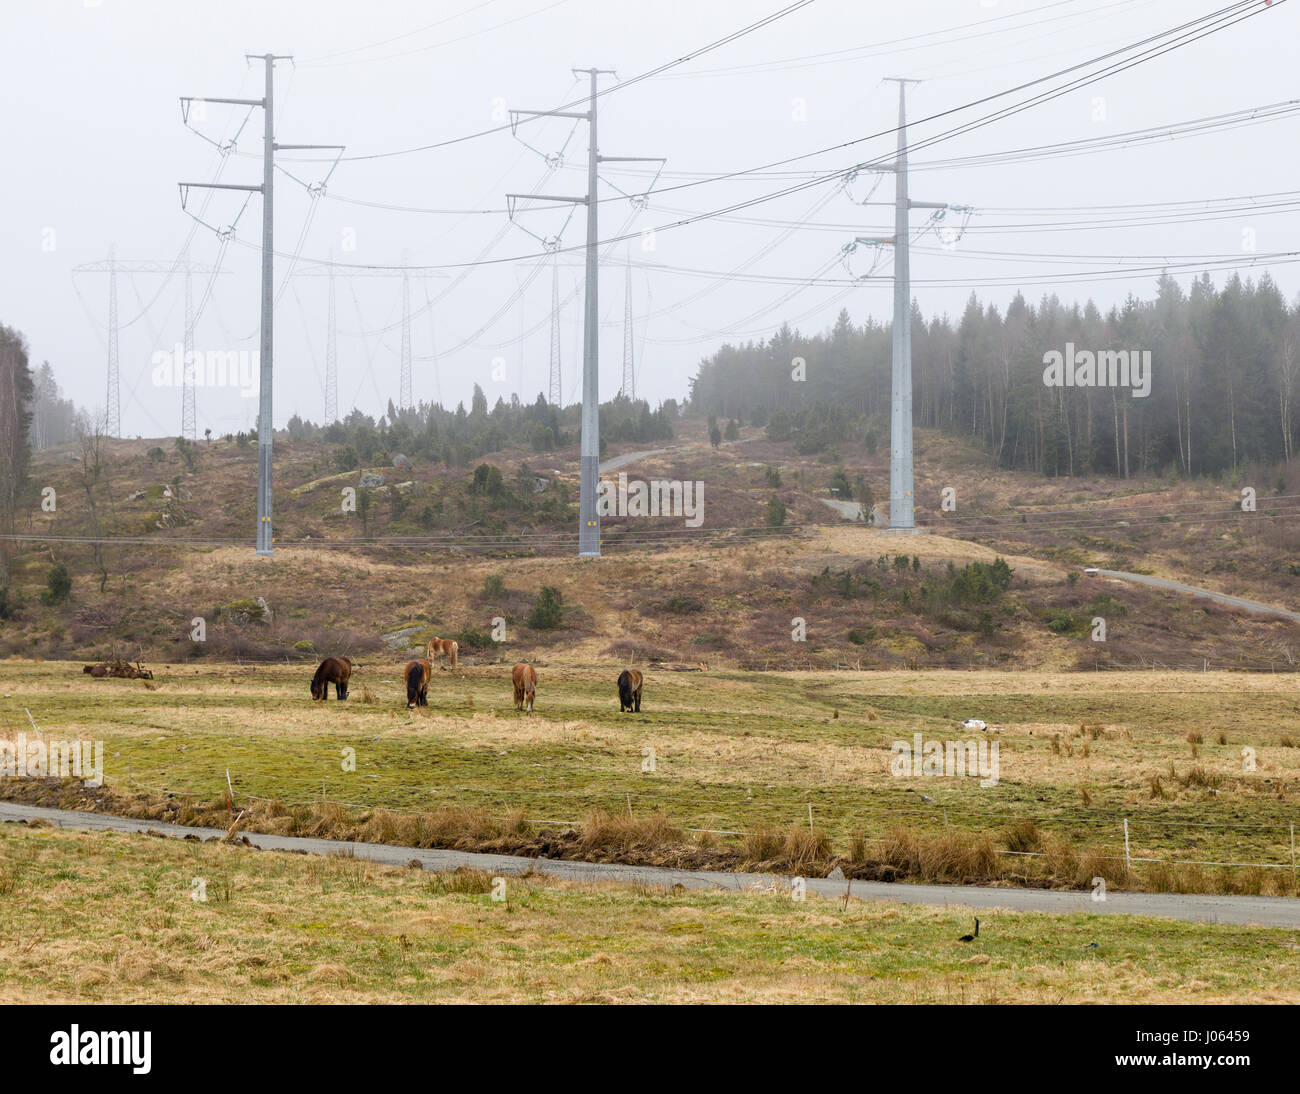 Horses in field with overhead electricity grid power lines  Model Release: No.  Property Release: No. - Stock Image